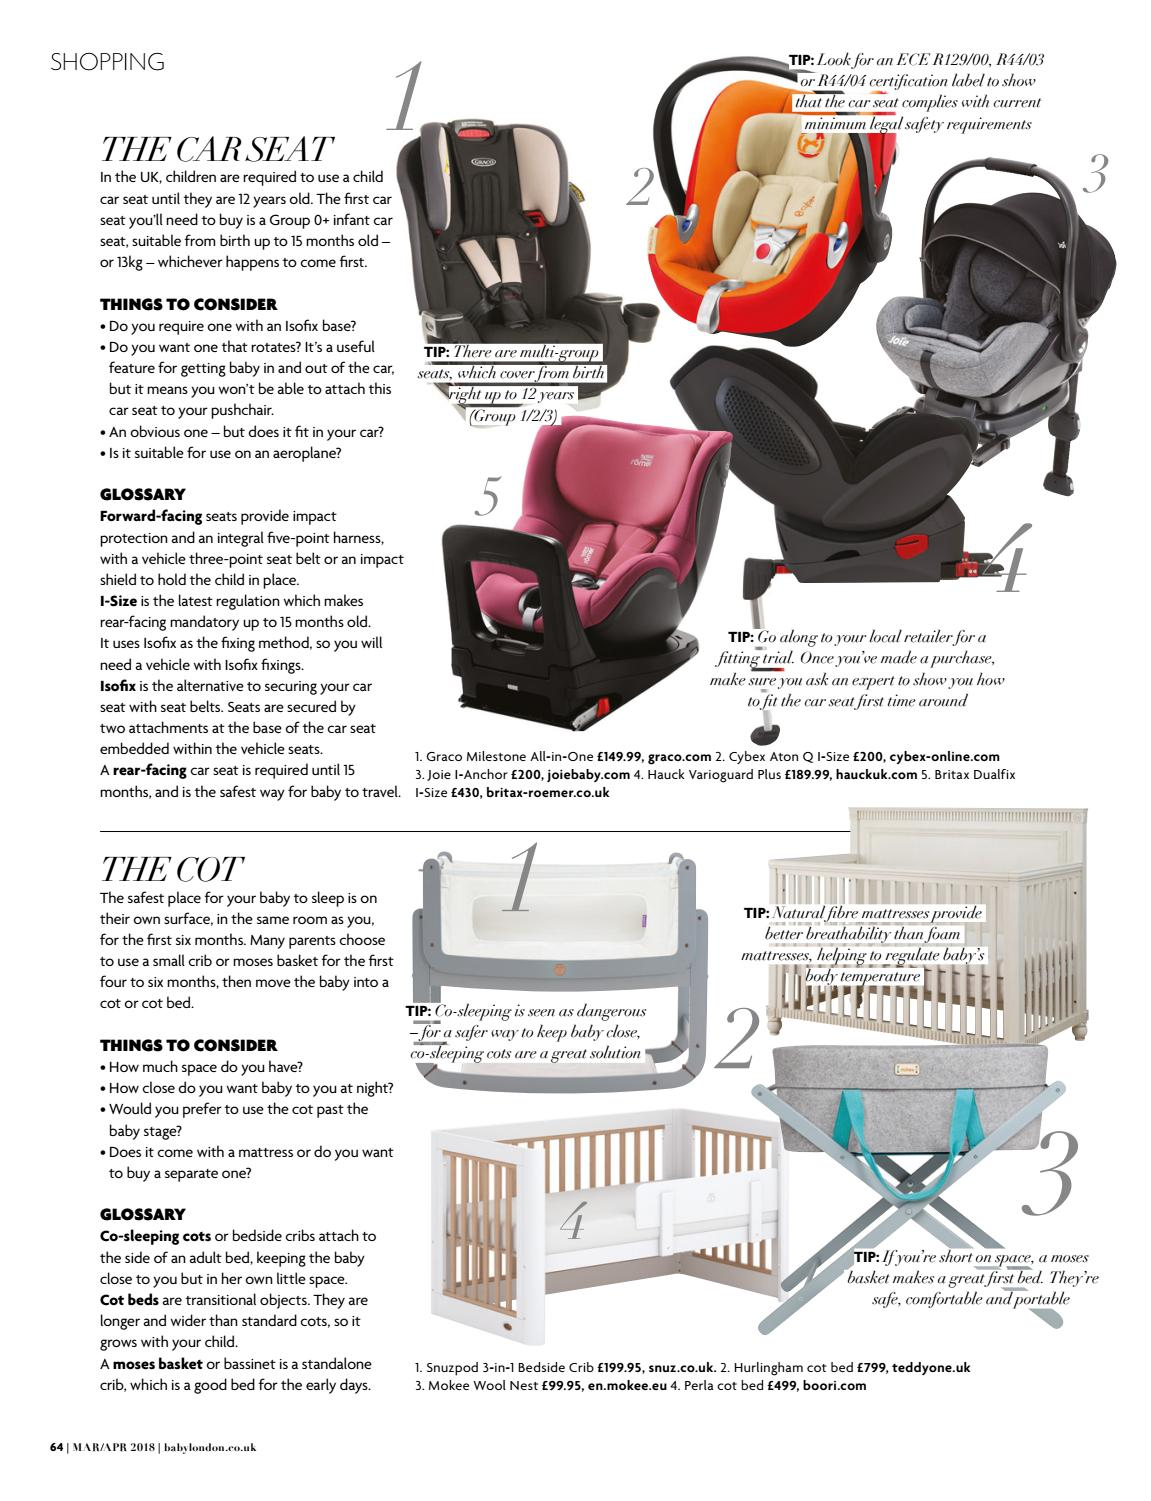 Graco Milestone Car Seat Isofix Baby London March April 2018 By The Chelsea Magazine Company